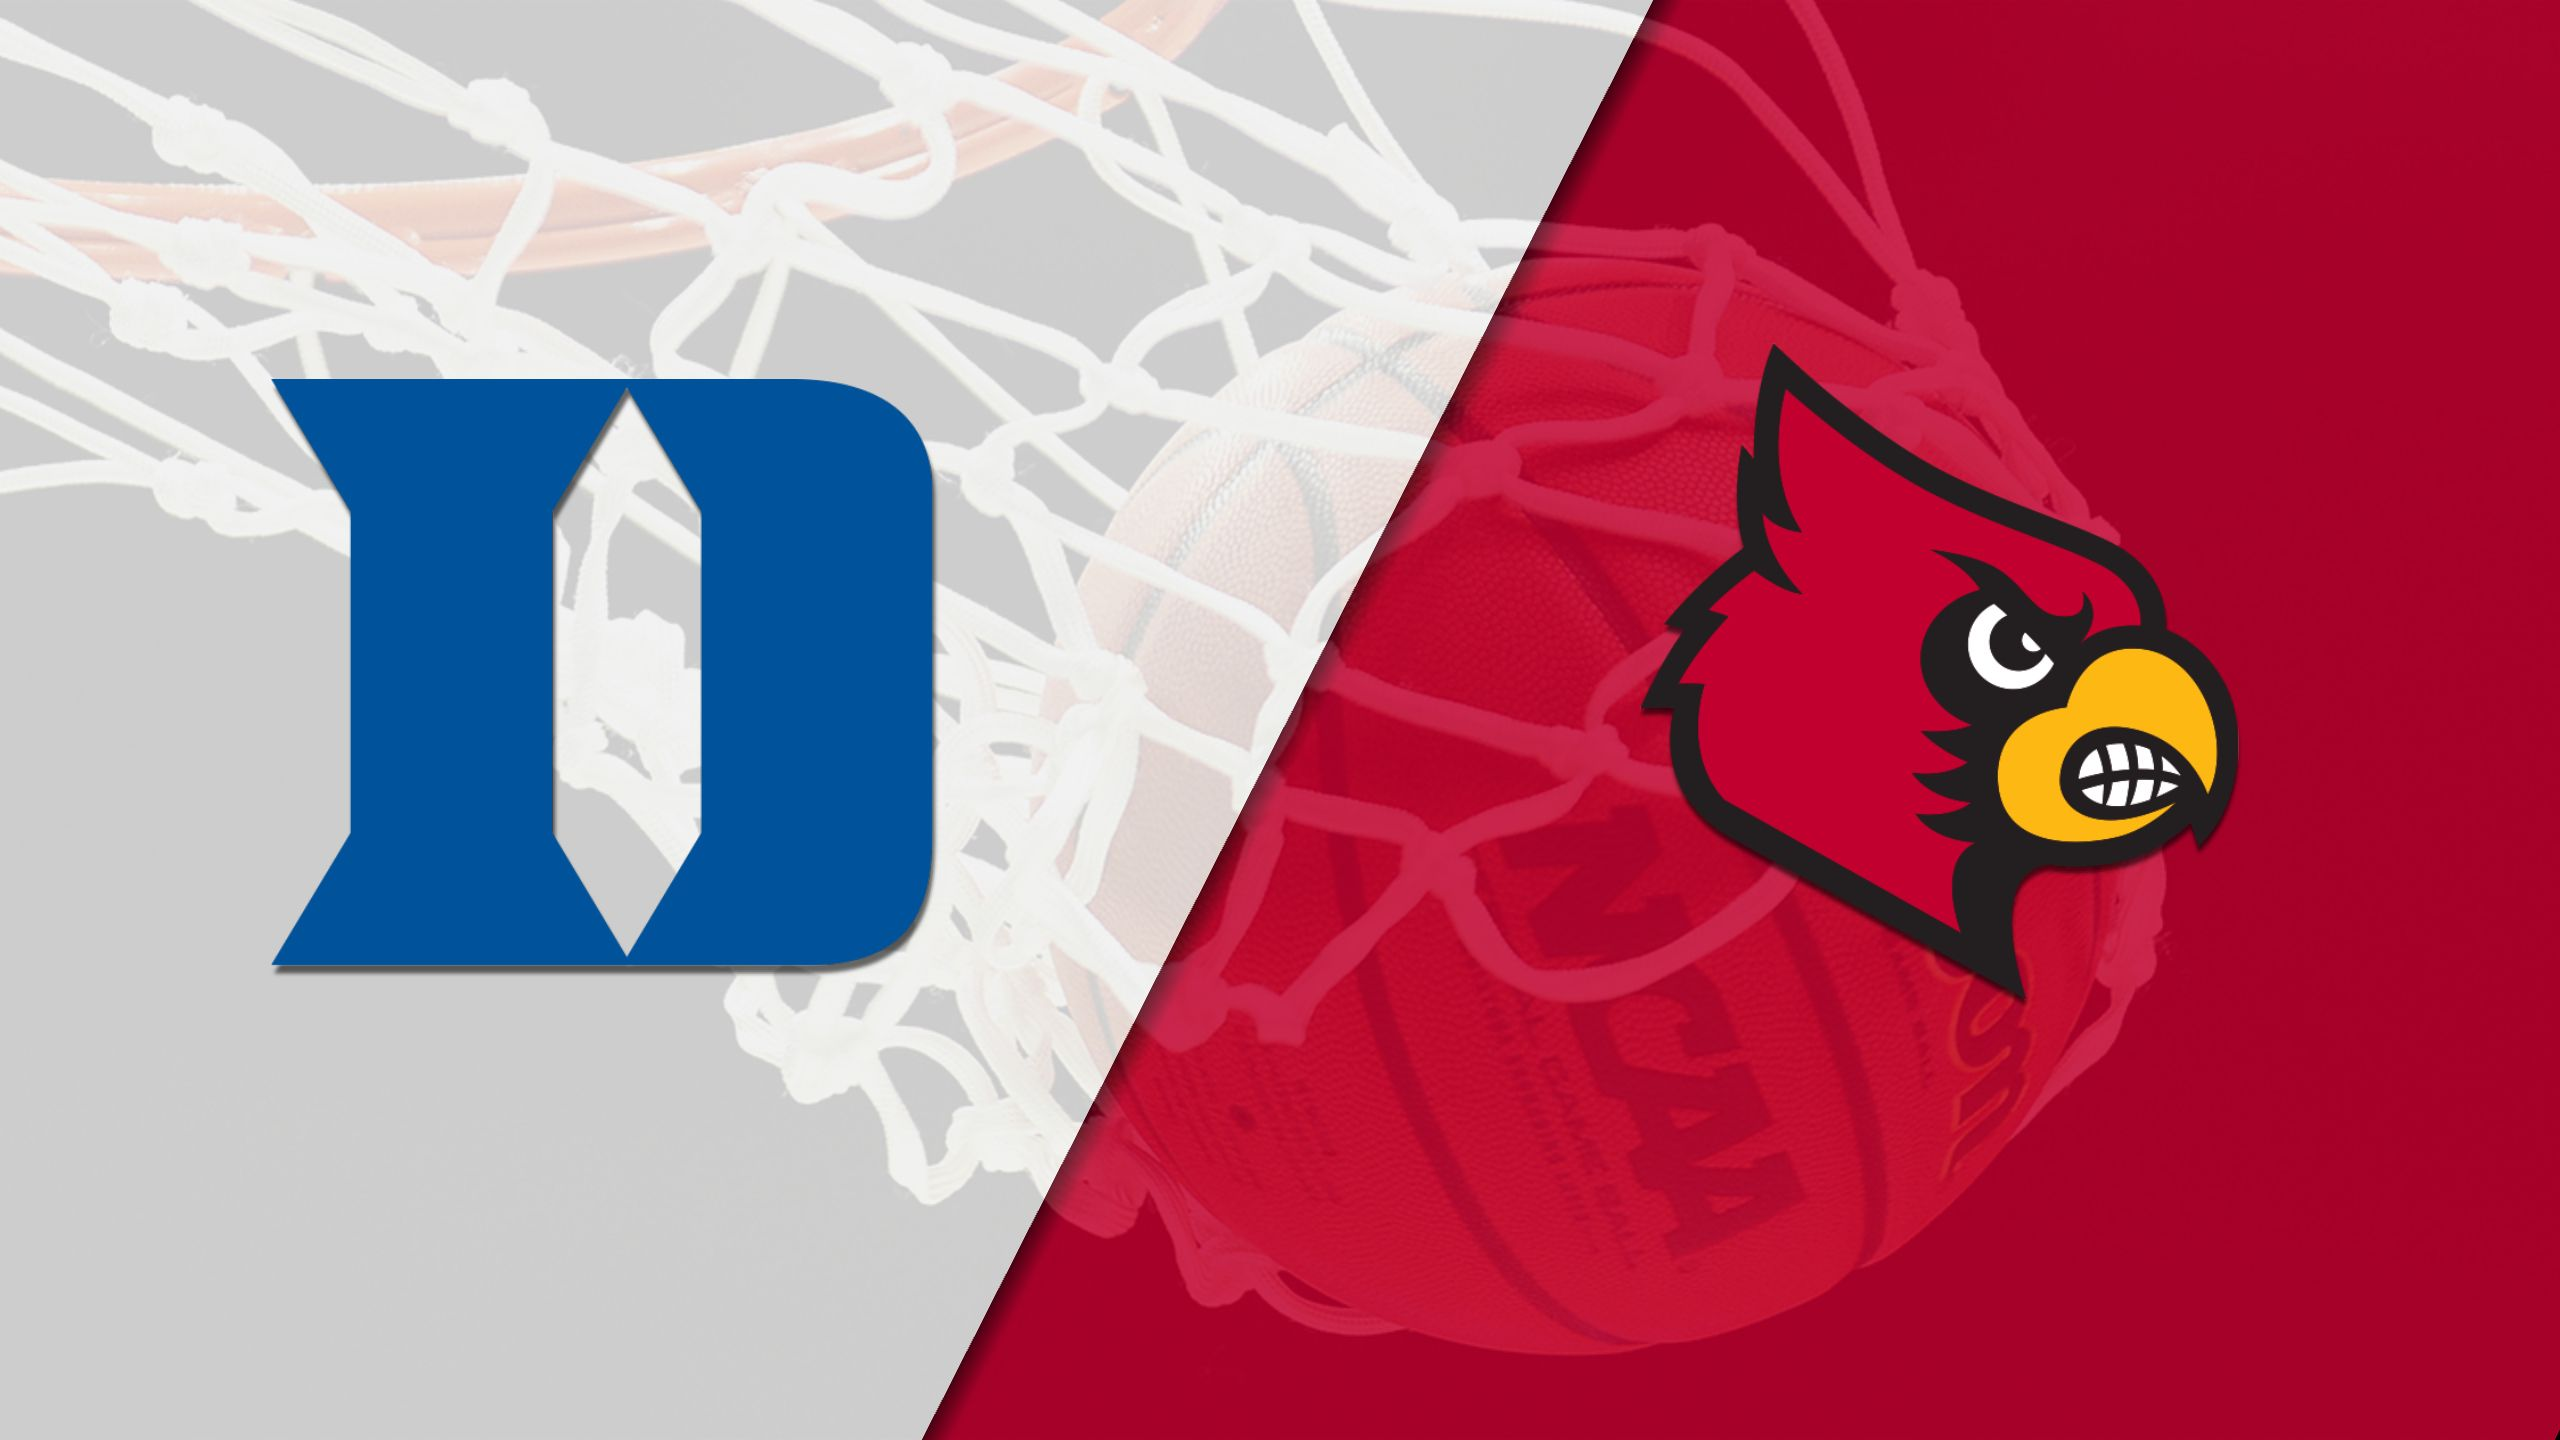 #17 Duke vs. #3 Louisville (W Basketball)